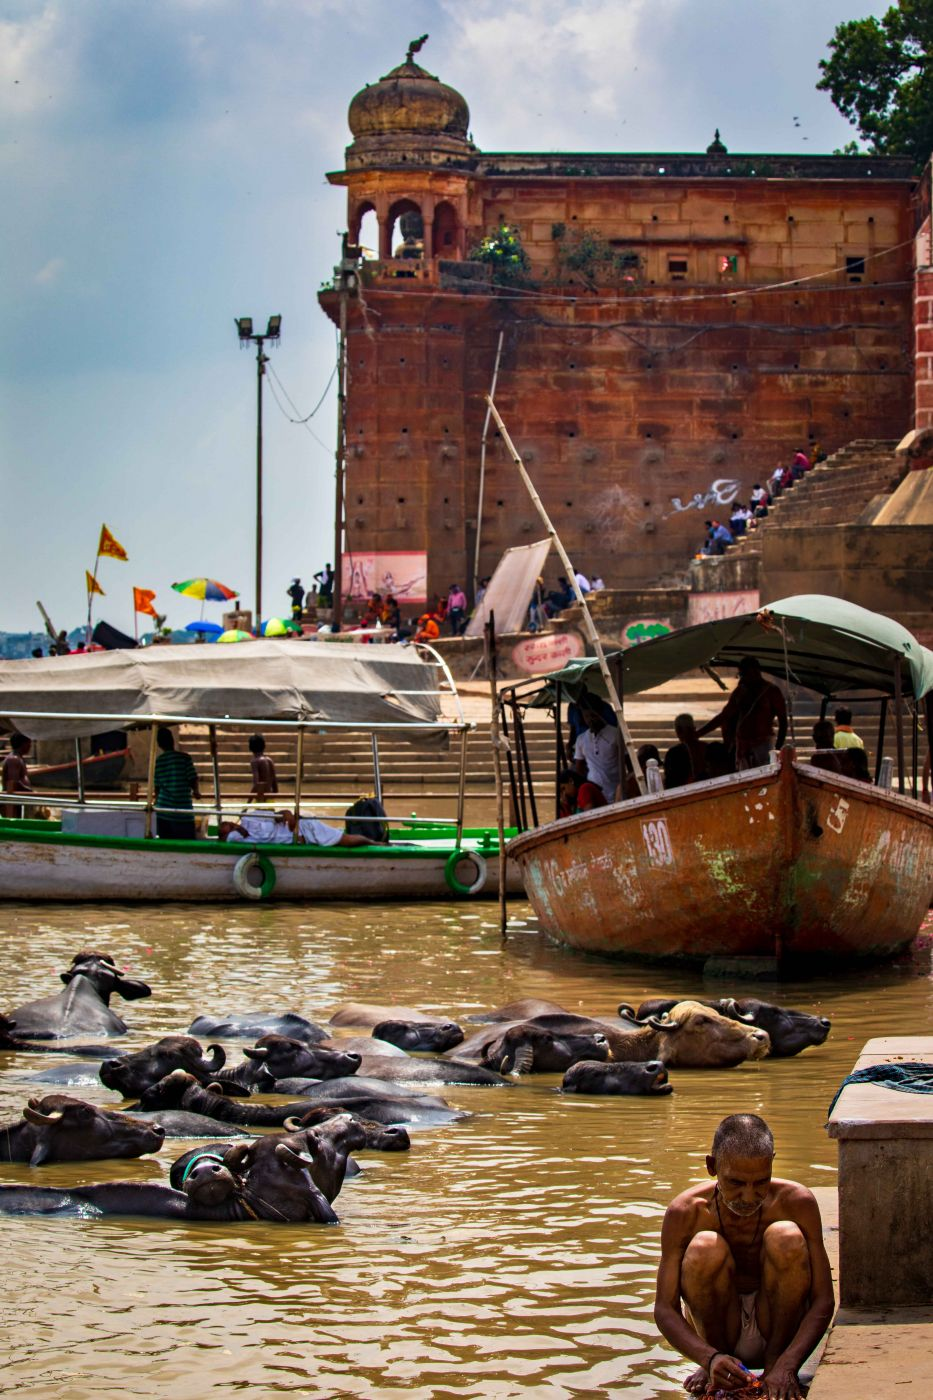 Buffalo cooling off in the Ganges Varanasi, India